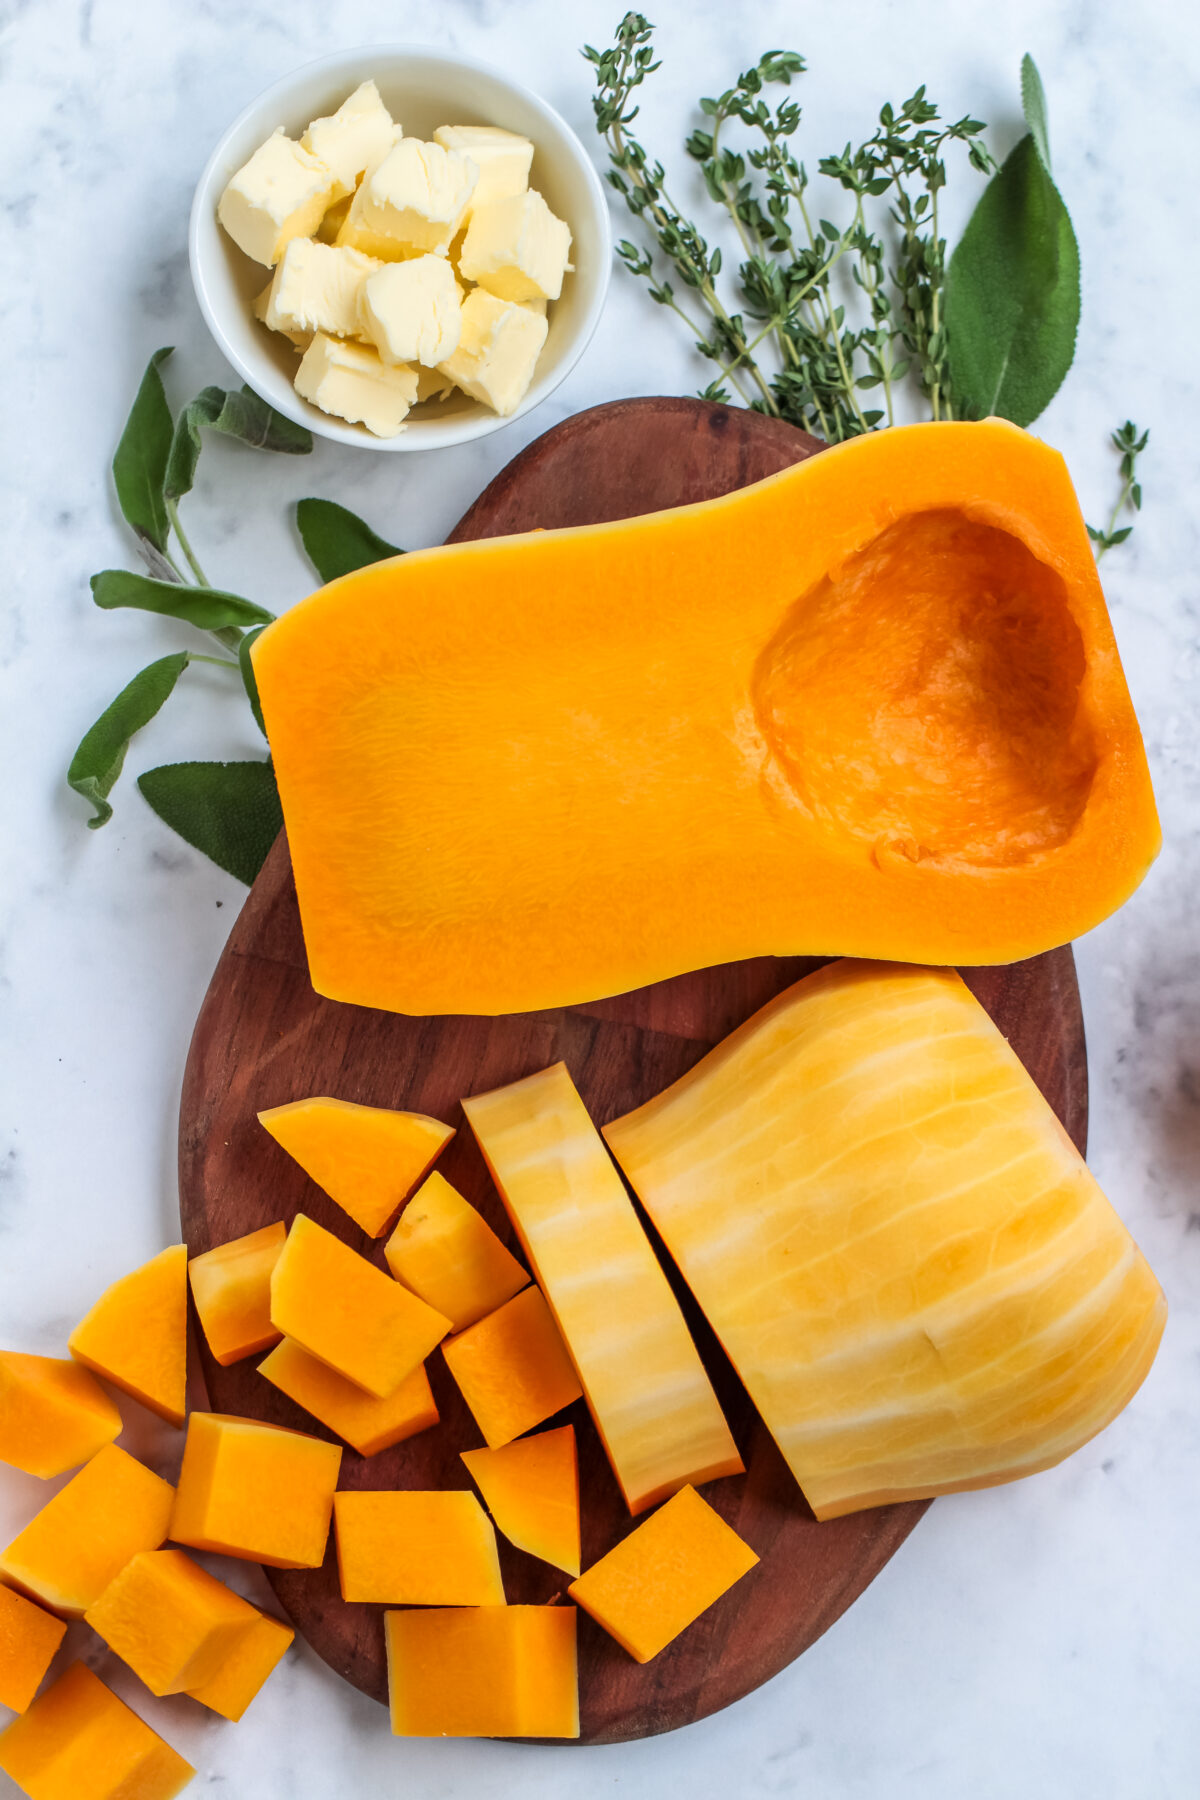 Butternut squash being cubed.